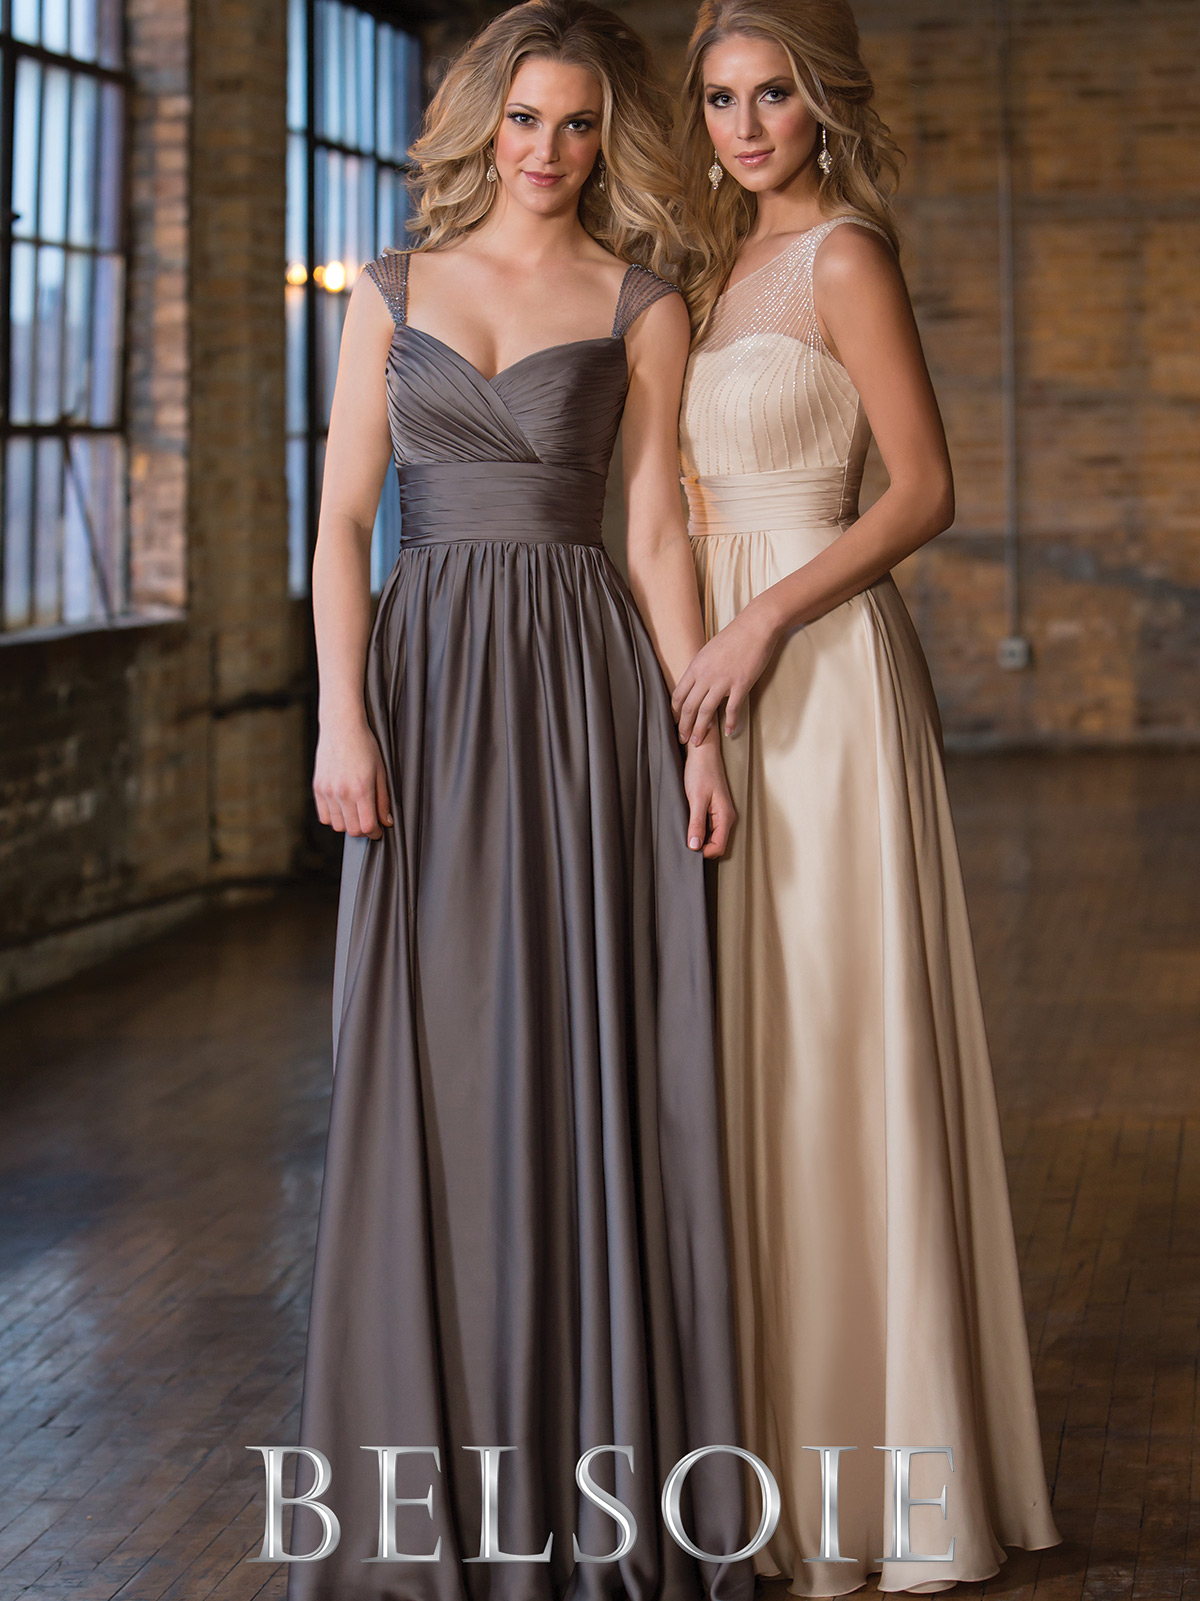 79b6071c554 Jasmine Belsoie Bridesmaid Dresses Wedding Gallery